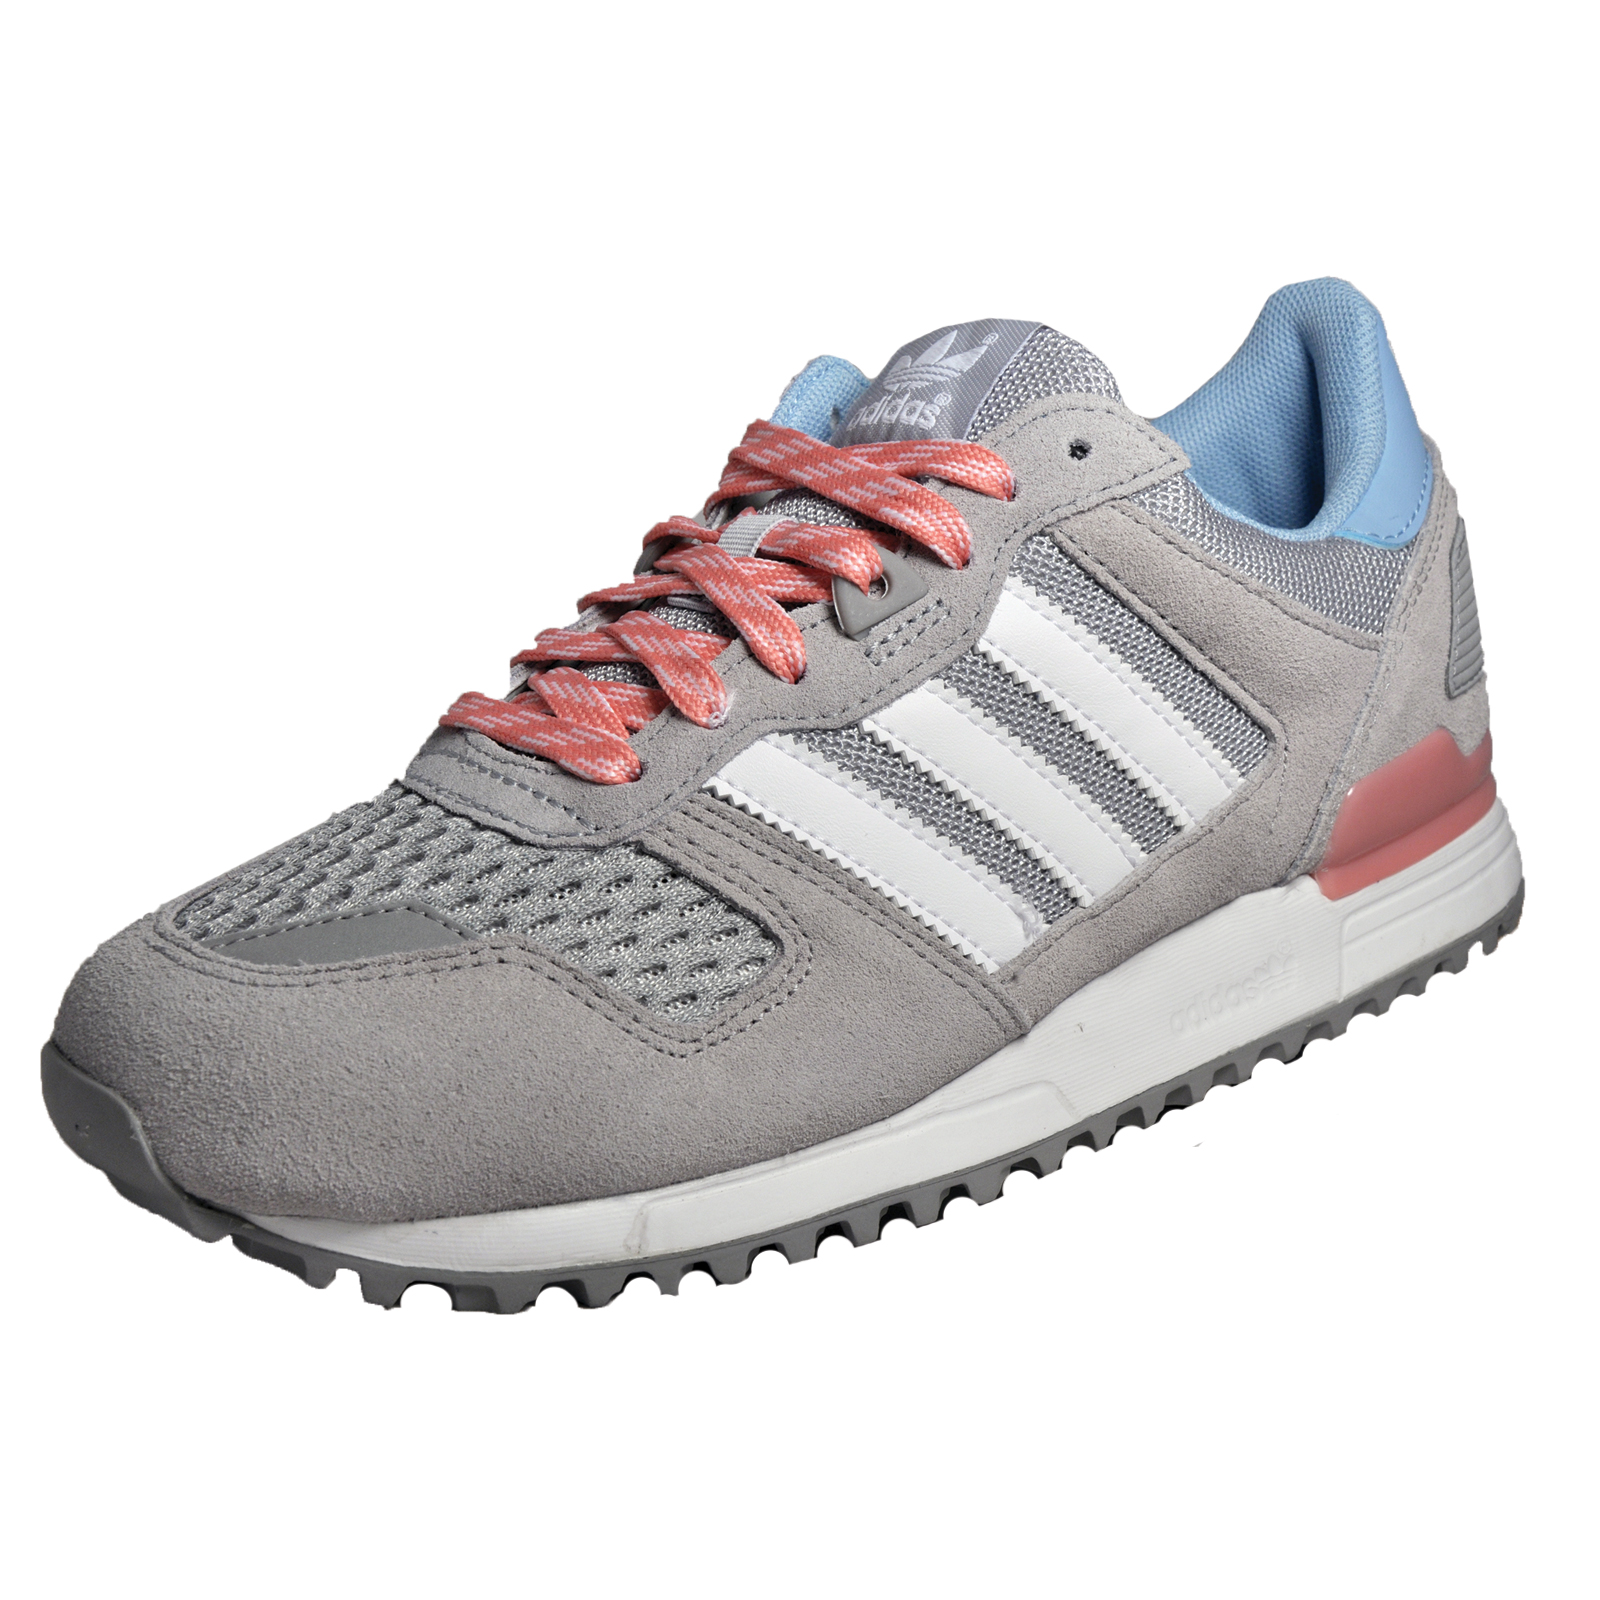 premium selection 92d86 cfcc4 Adidas Originals ZX 700 Womens Classic Casual Retro Running Trainers Grey B  Grade UK 5.5 Only